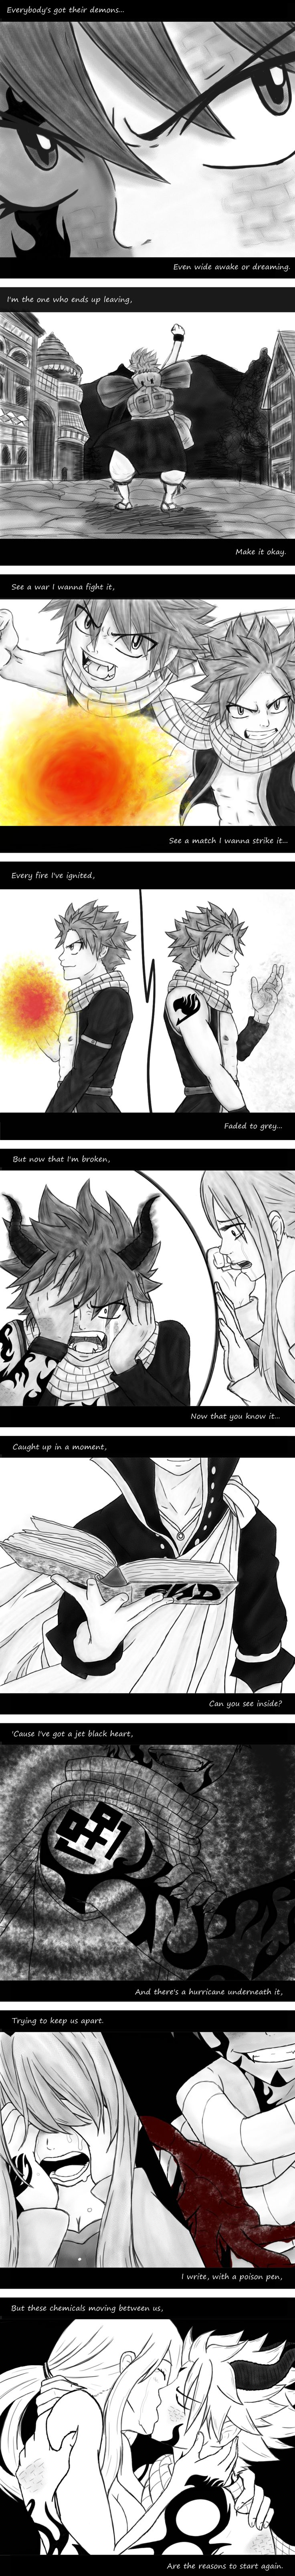 END!Nalu - Jet Black Heart by bittybitt39 on DeviantArt Not sure if I should pin to my 5sos board or my anime one